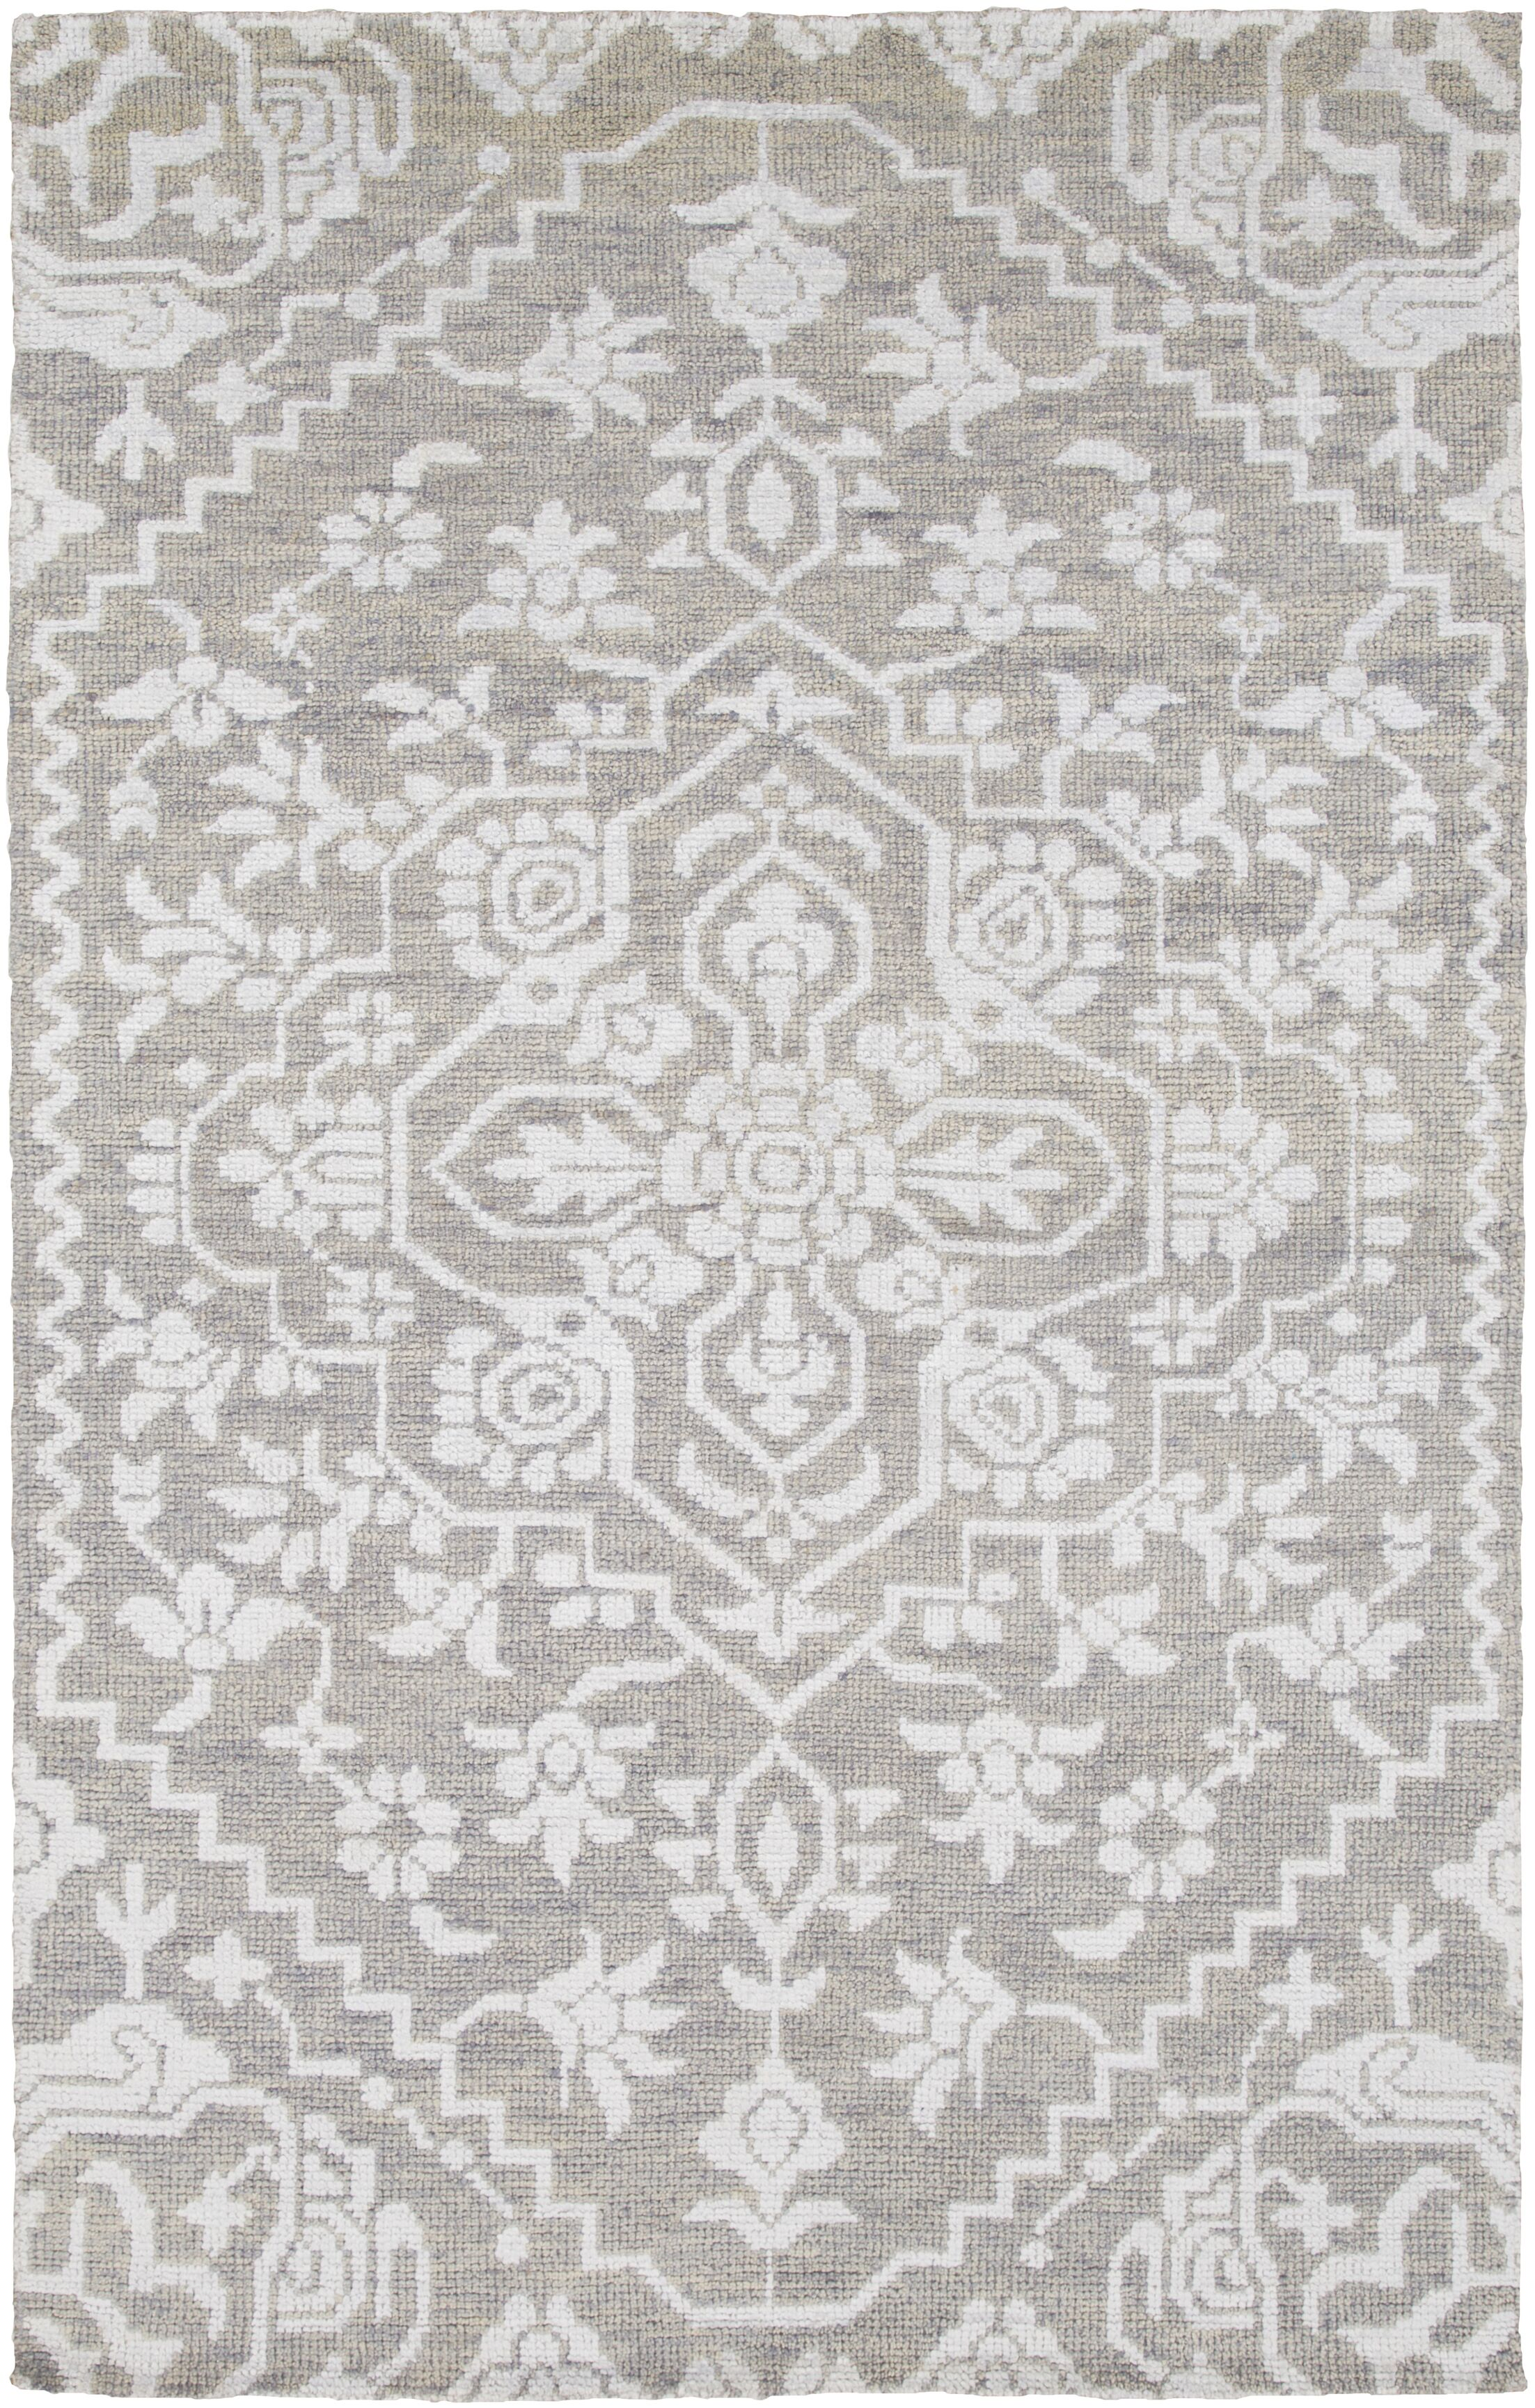 L'Ermitage Hand-Knotted Gray Area Rug Rug Size: Rectangle 8' x 10'